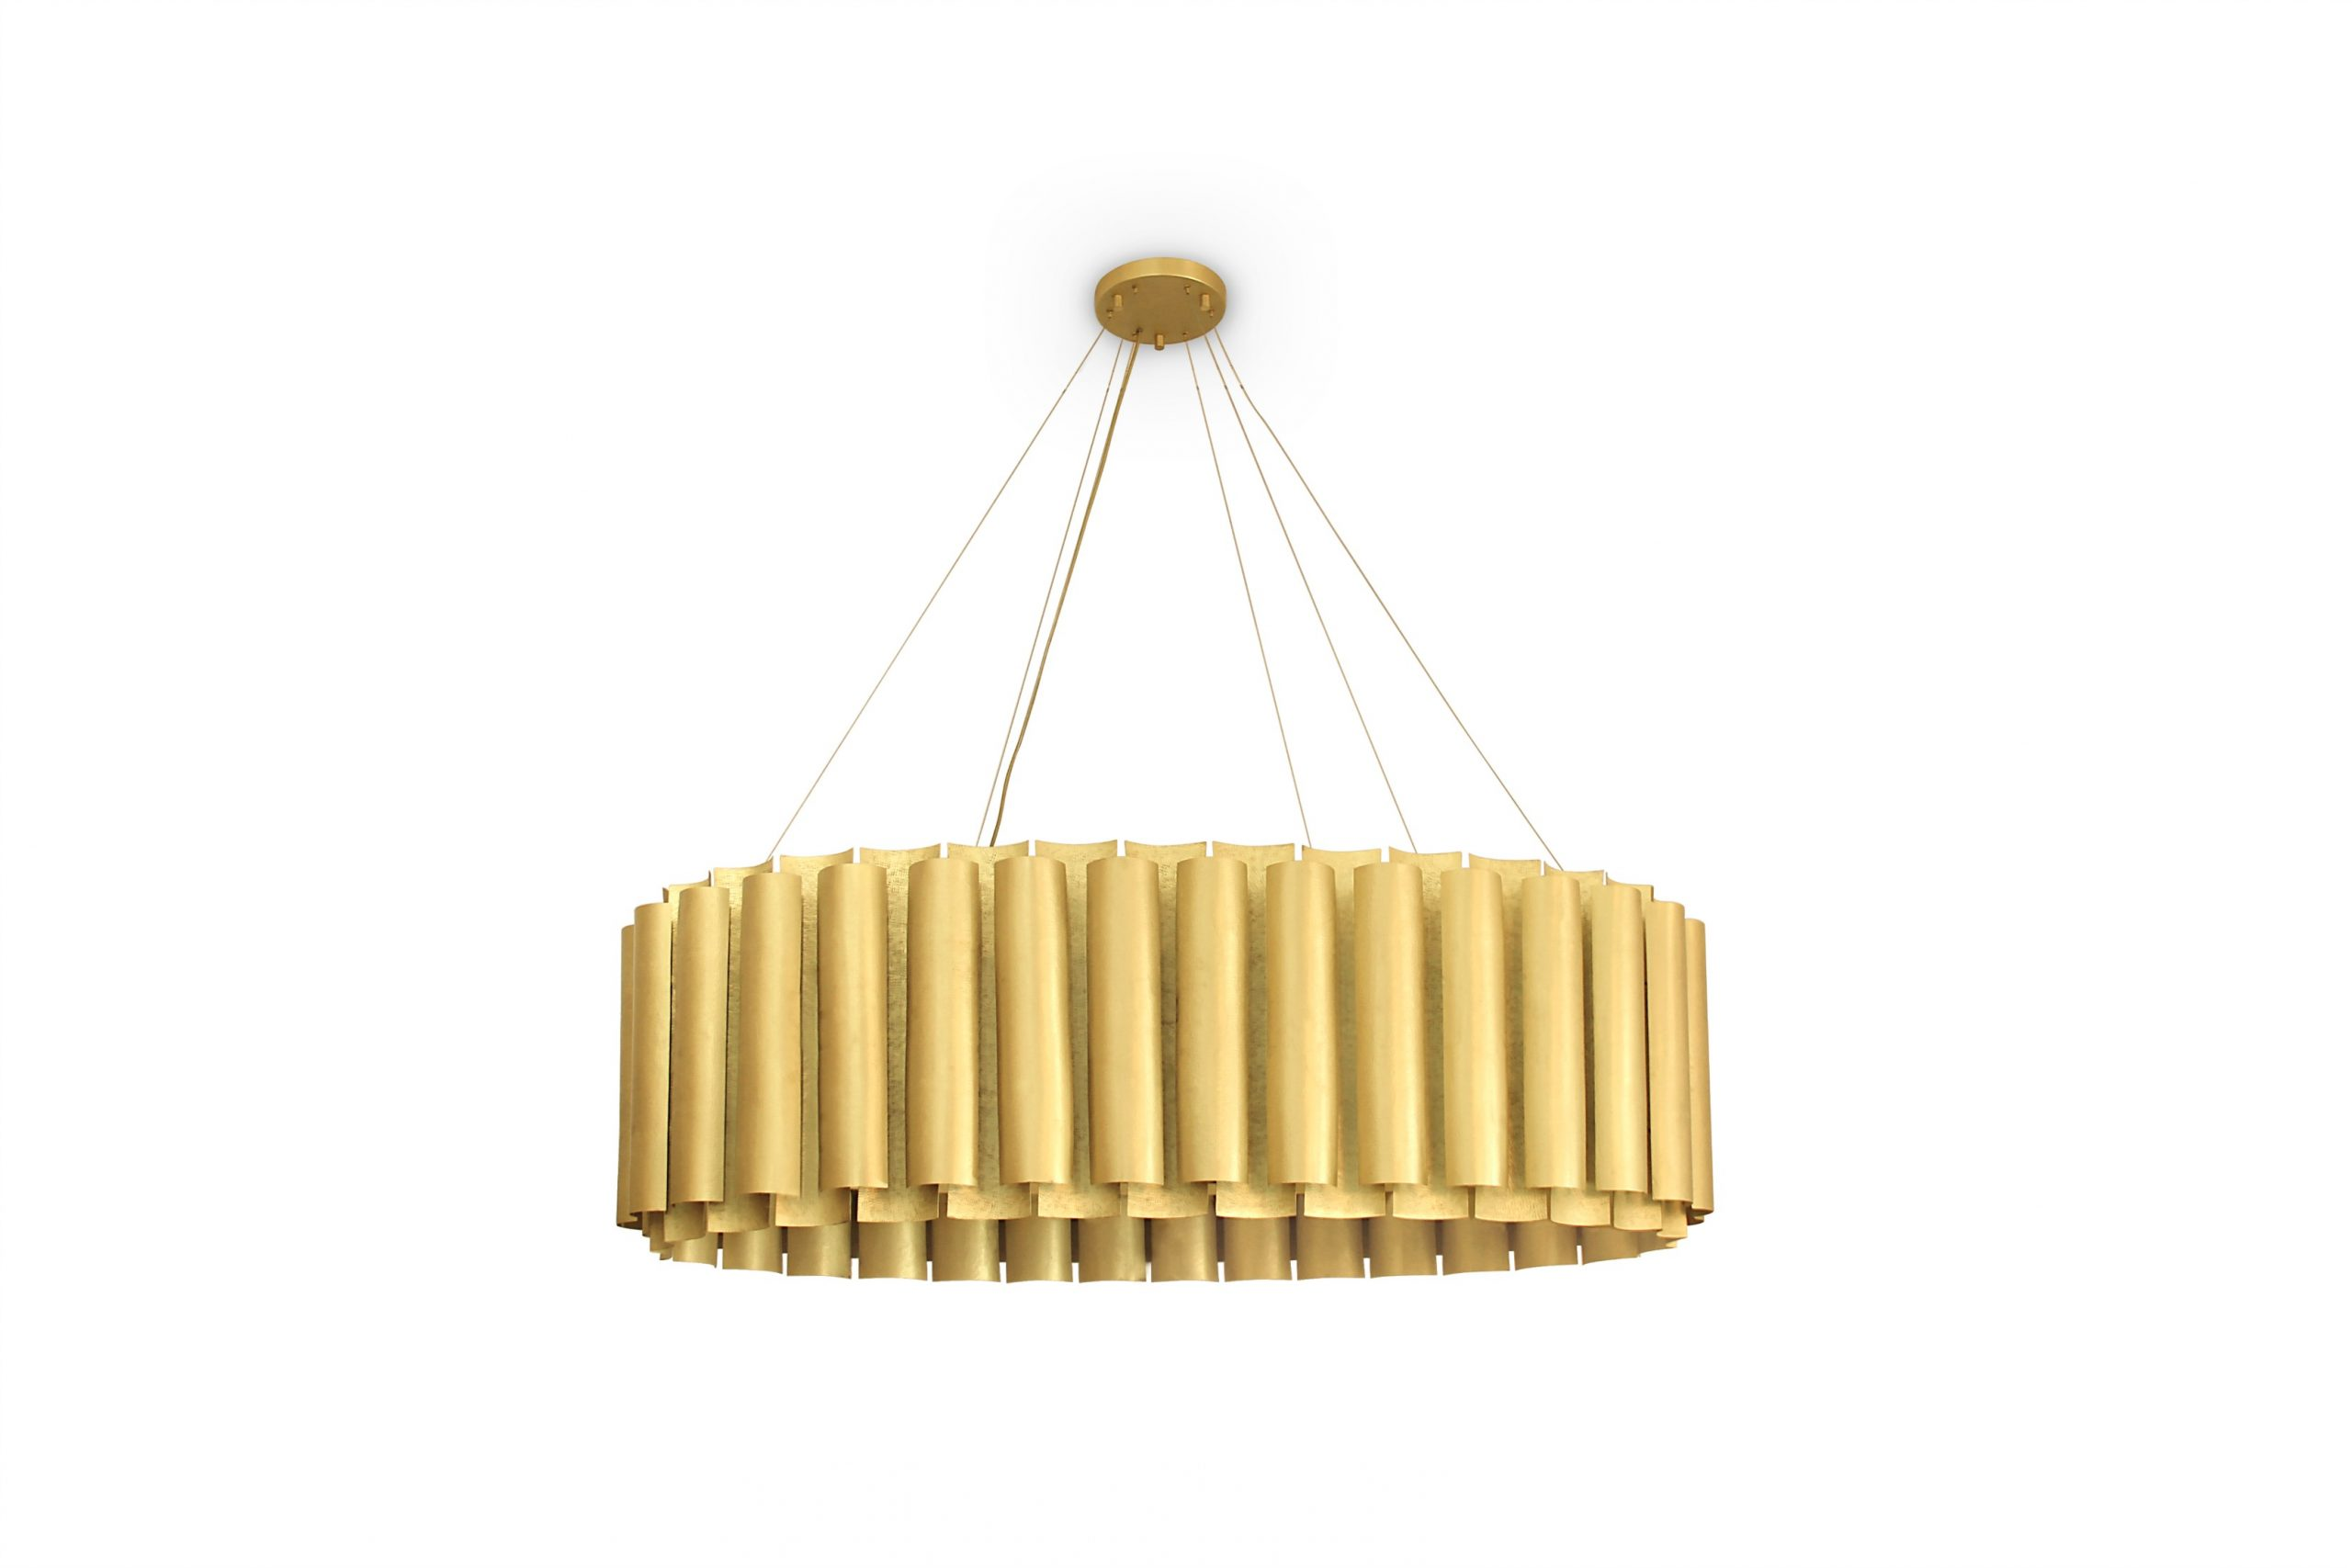 Colours of the Year by Pantone: Ideas for Your Home Décor colours of the yearColours of the Year by Pantone: Ideas for Your Home Décoraurum suspension light 3 1 HR scaled